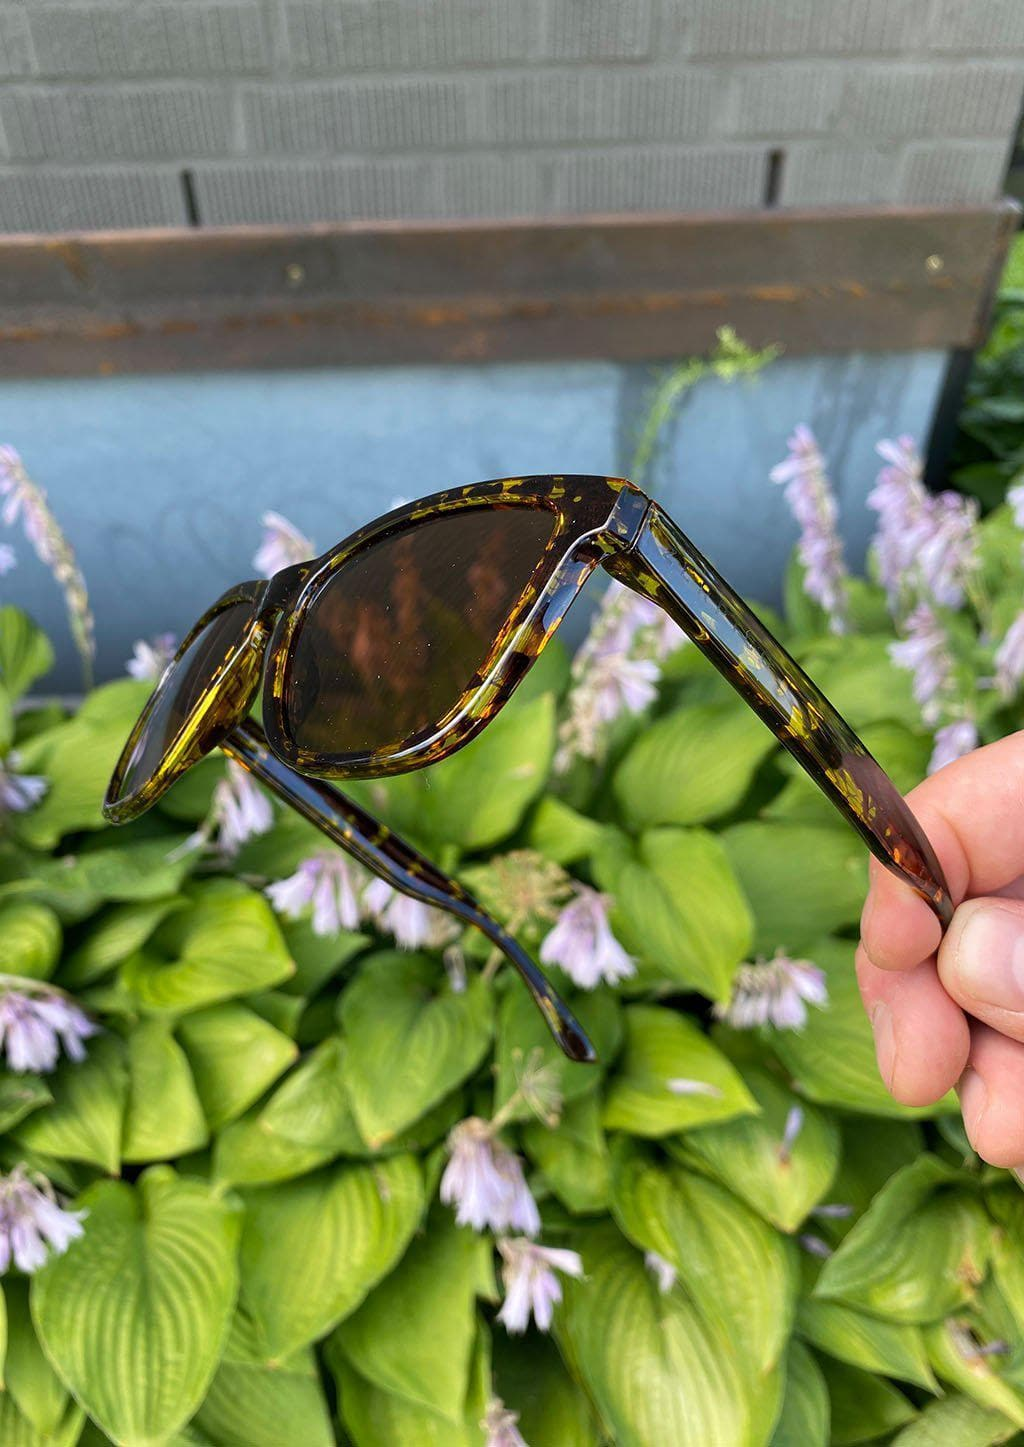 Our Mood V2 is an improved version of our last wayfarers. Plastic body for great quality and durabilty. This is Chic with tortoise frame and brown lenses. Out in the nature.